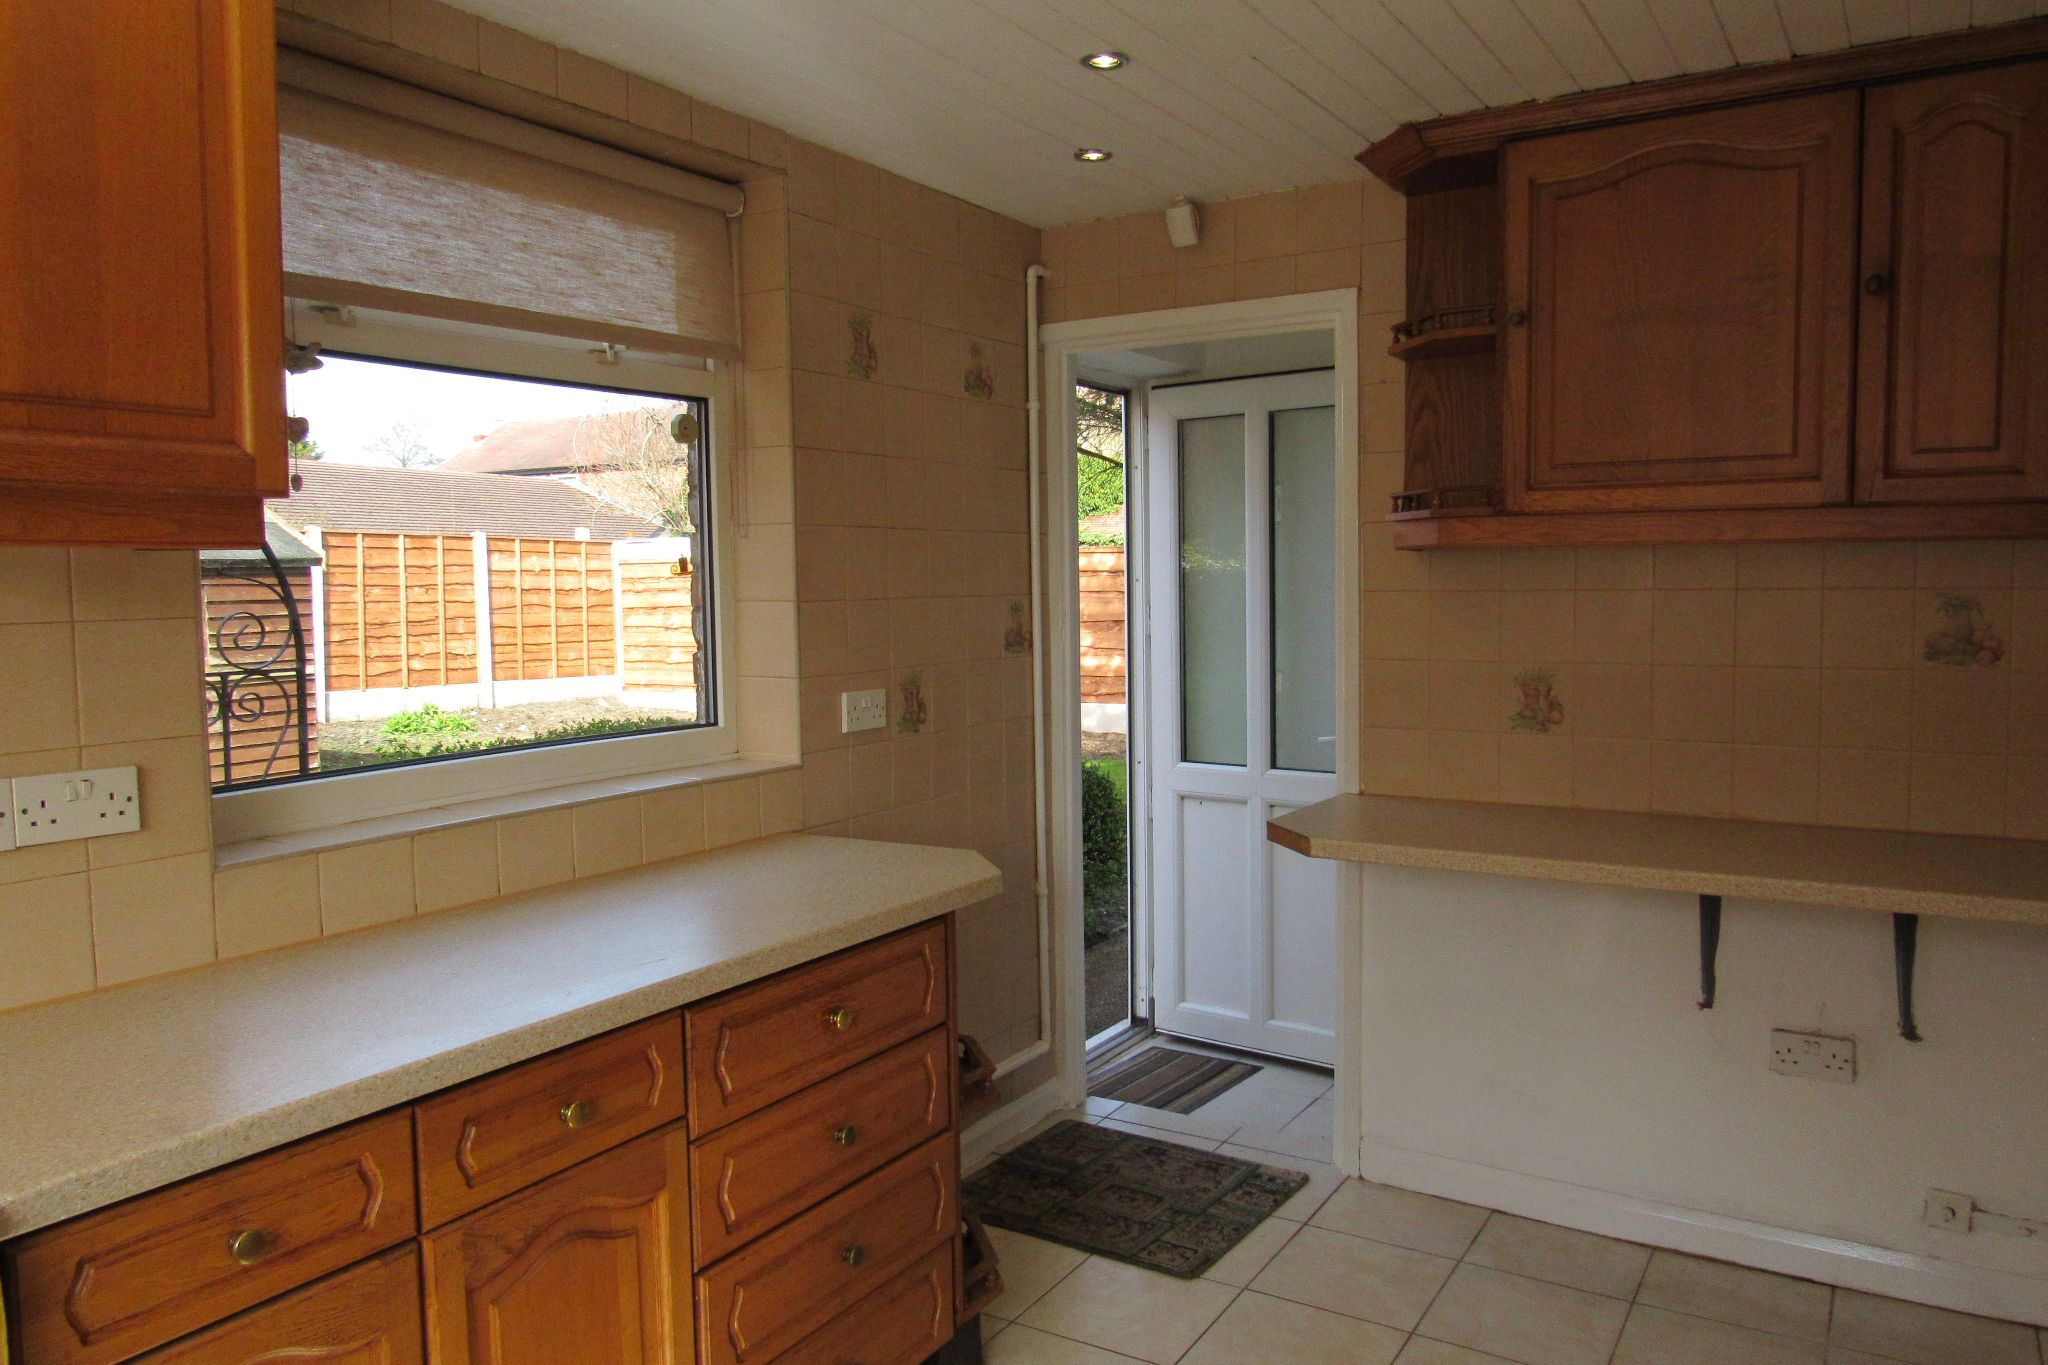 3 bedroom end terraced house SSTC in Manchester - Photograph 14.